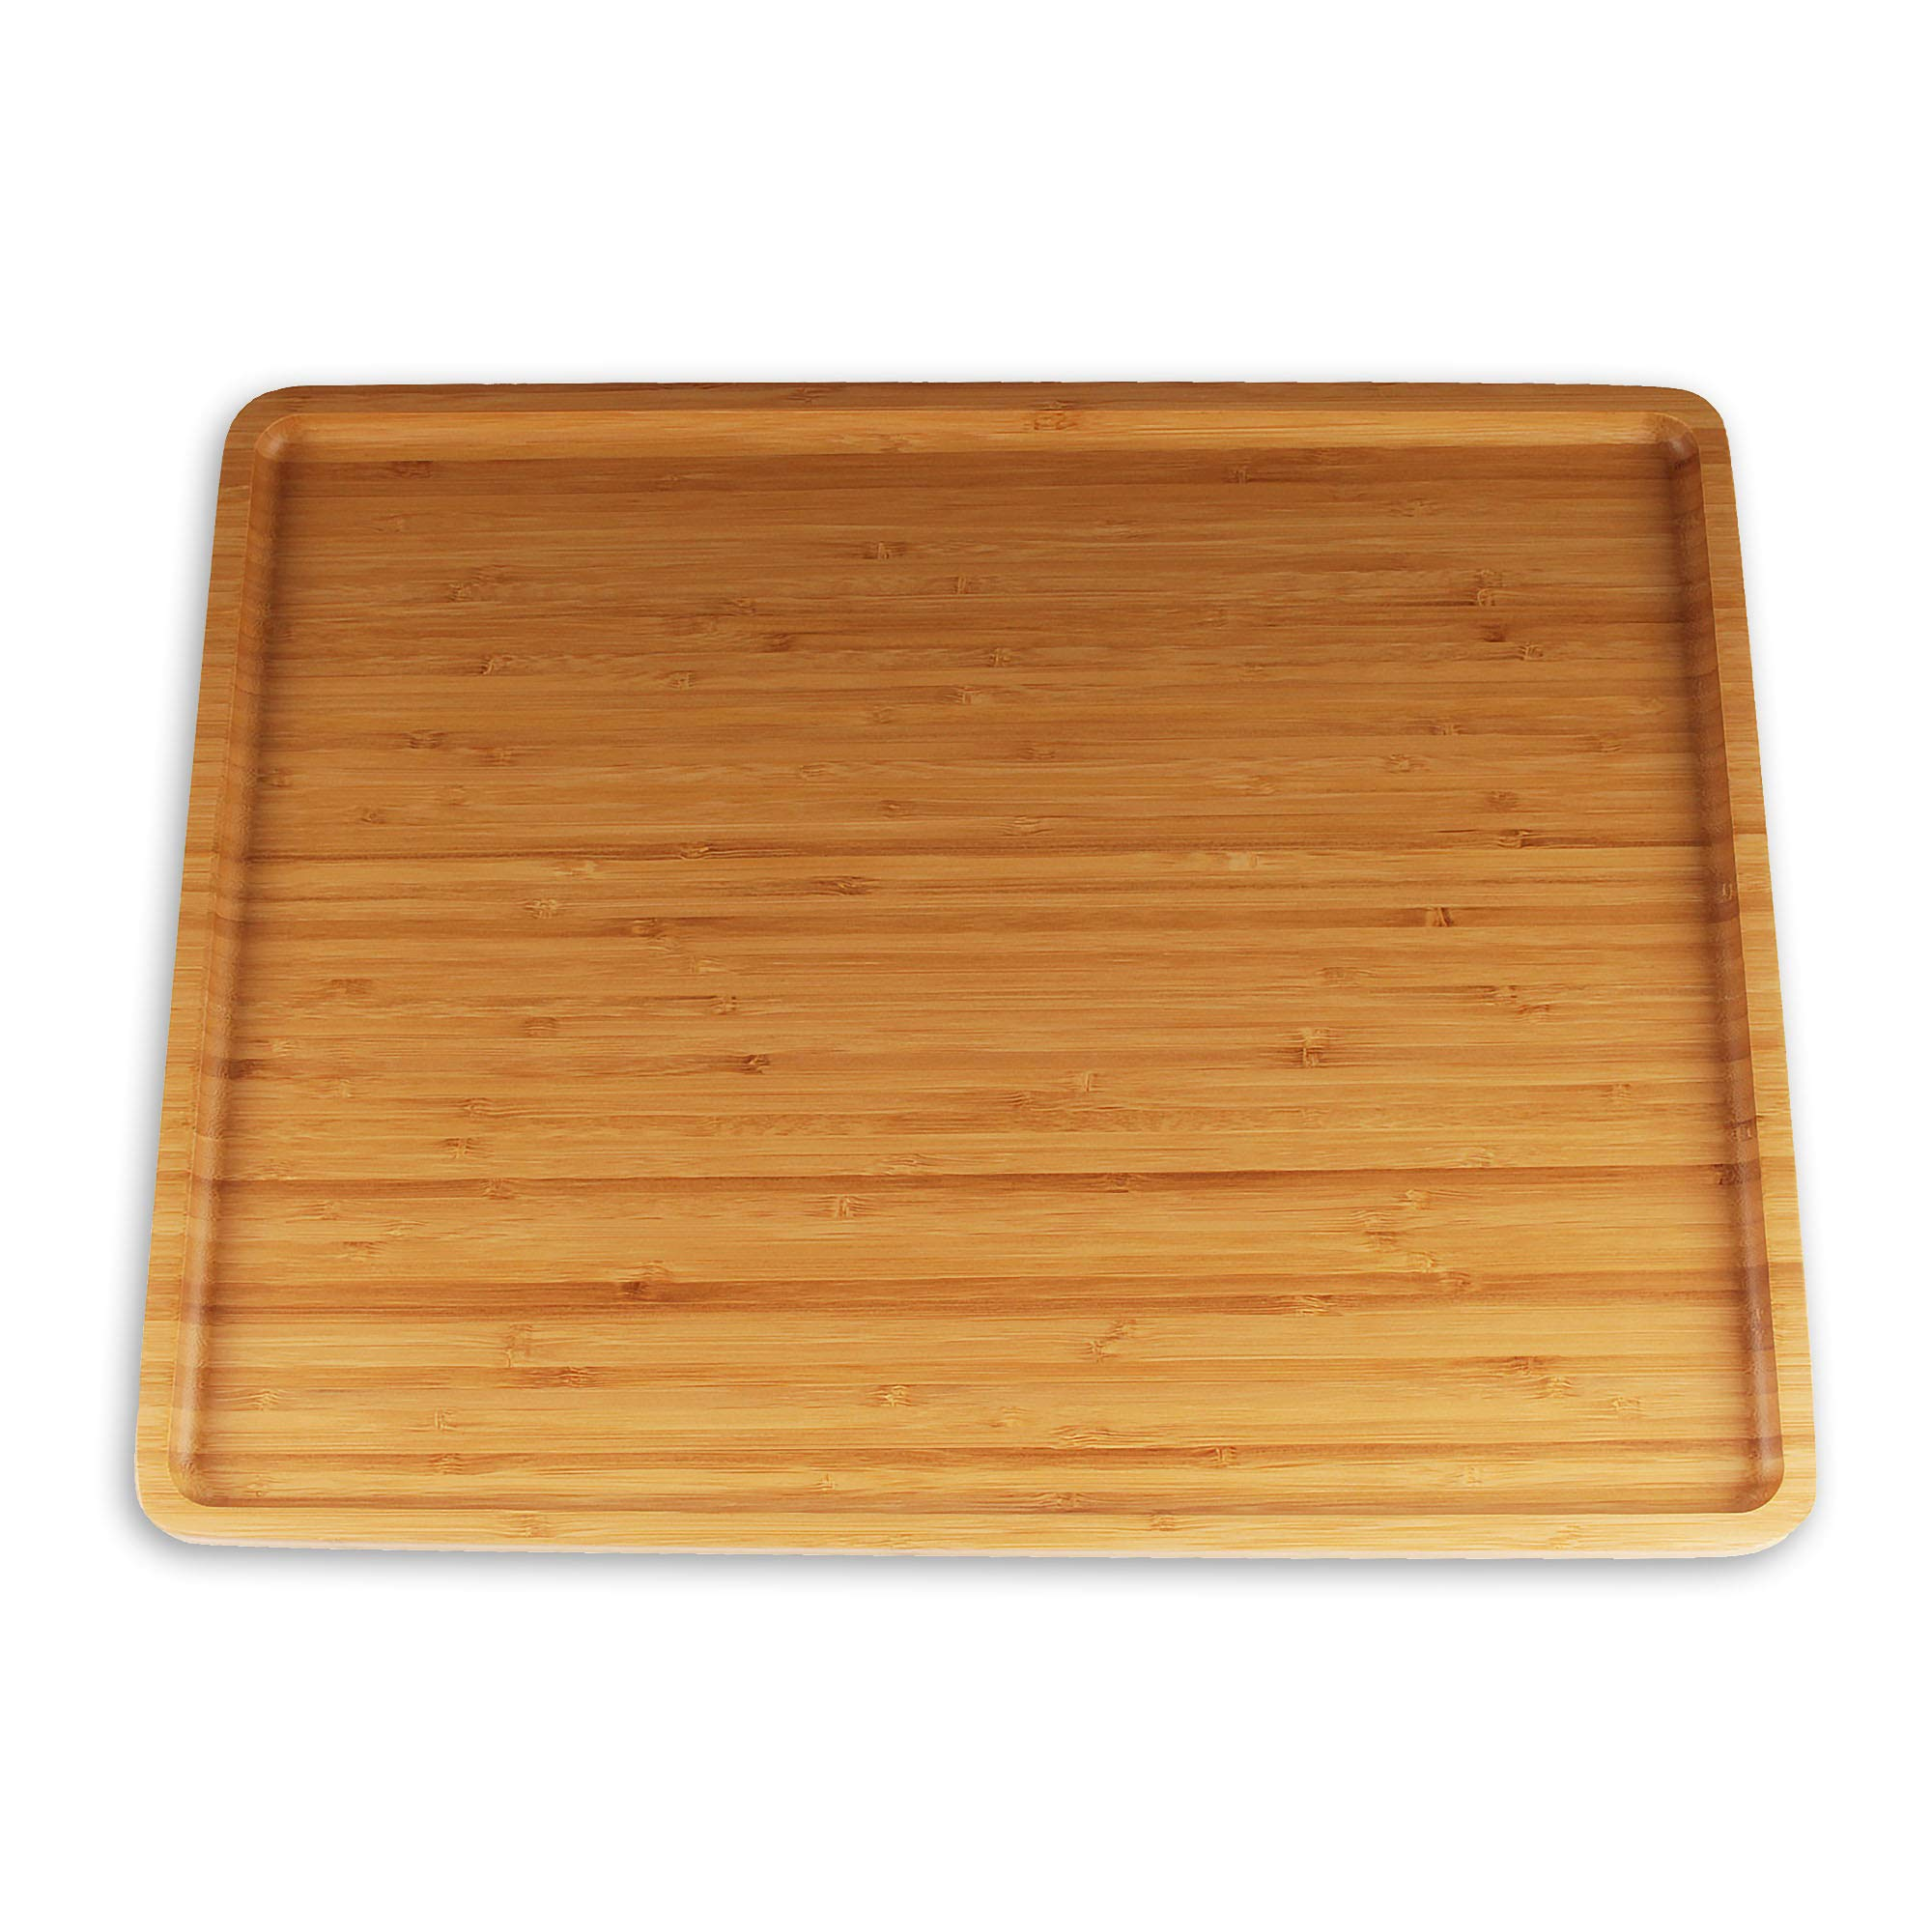 """Organic Bamboo Serving Tray - 17""""x13""""x0.75"""" - Rounded Edges- 10 Pieces"""